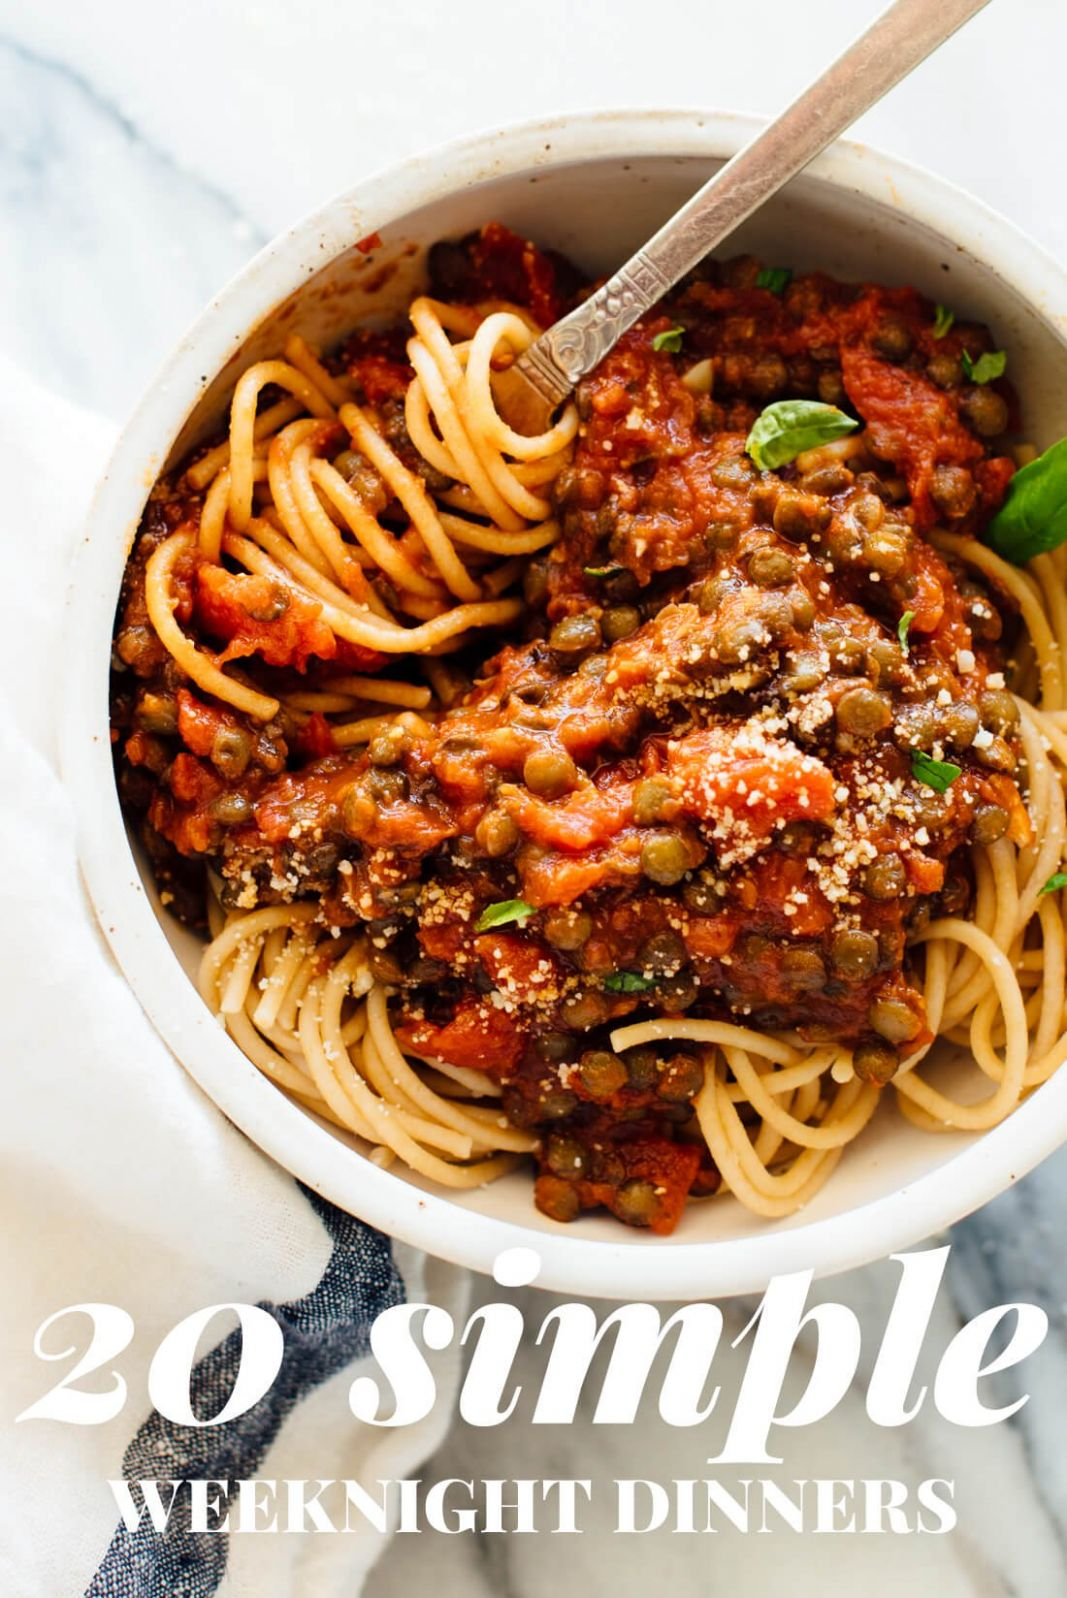 11 Simple Vegetarian Dinner Recipes - Cookie and Kate